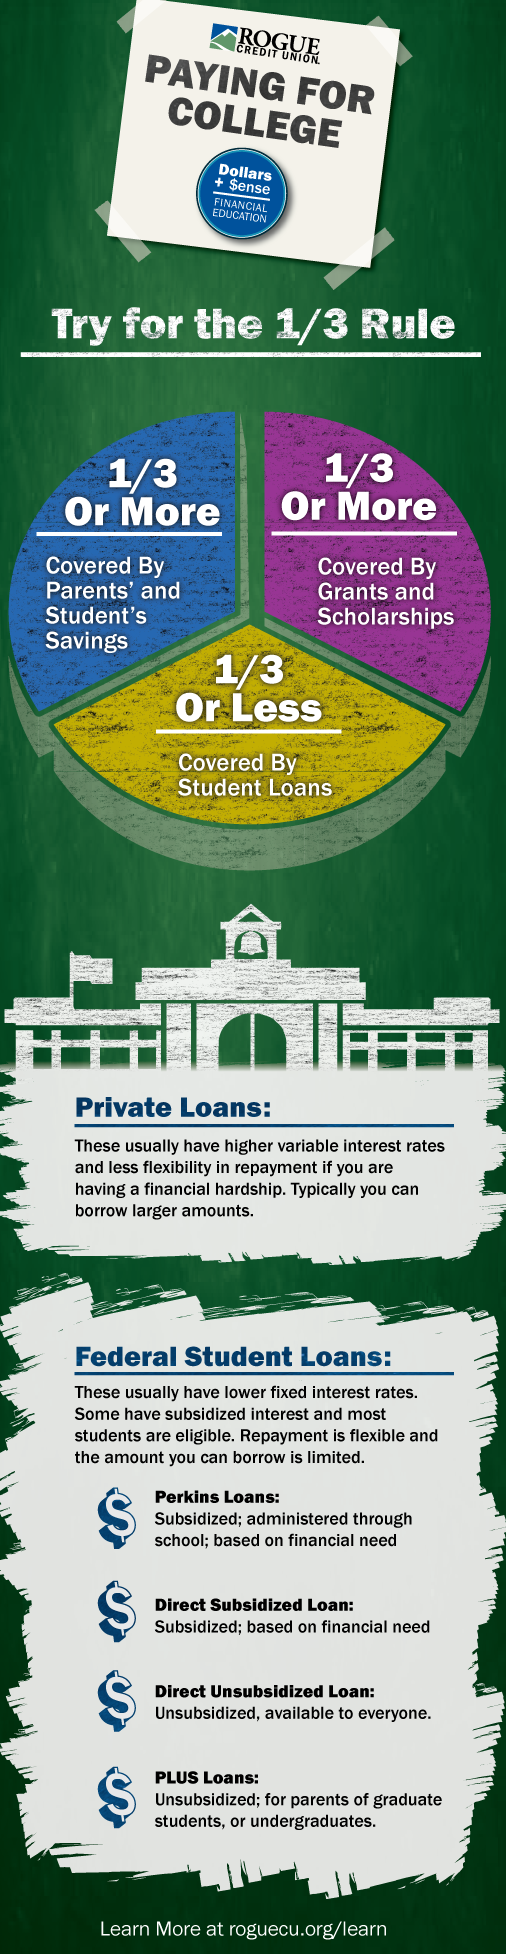 Infographic on Student Loans. See Description in blog post.